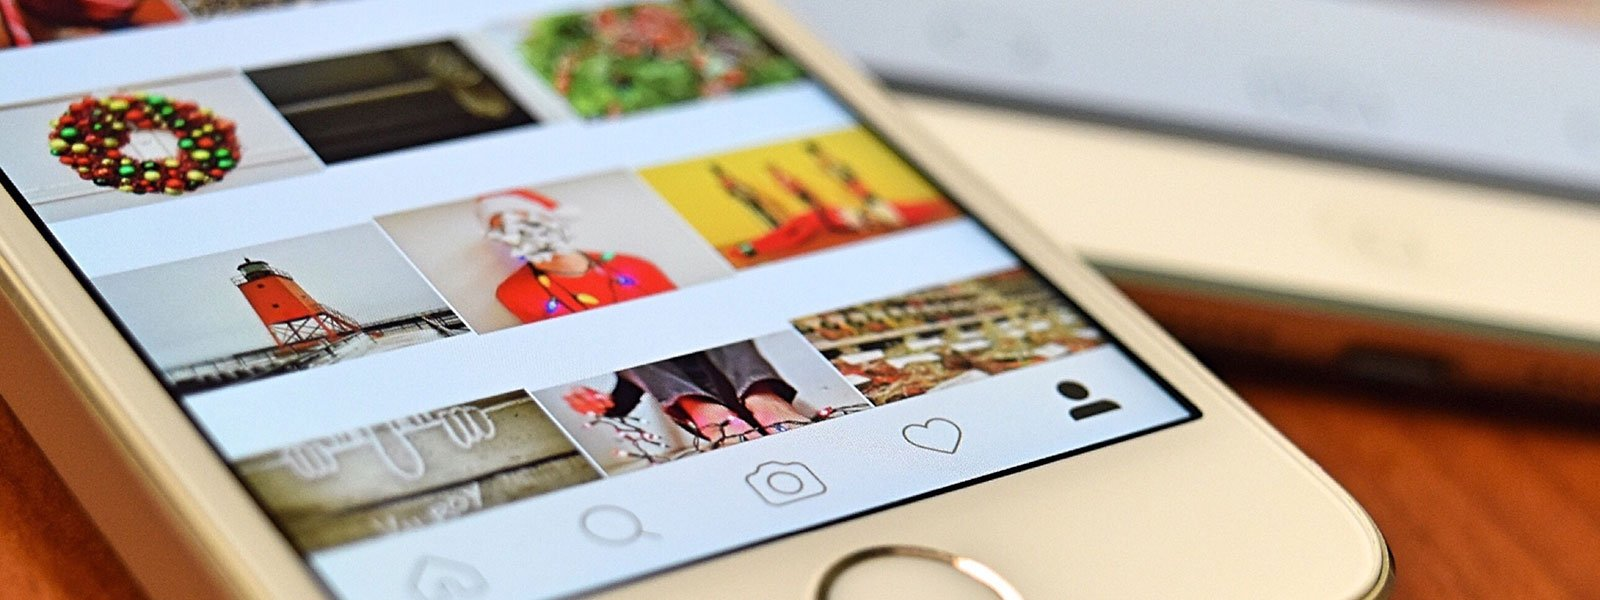 Proven Instagram engagement tips for 2019